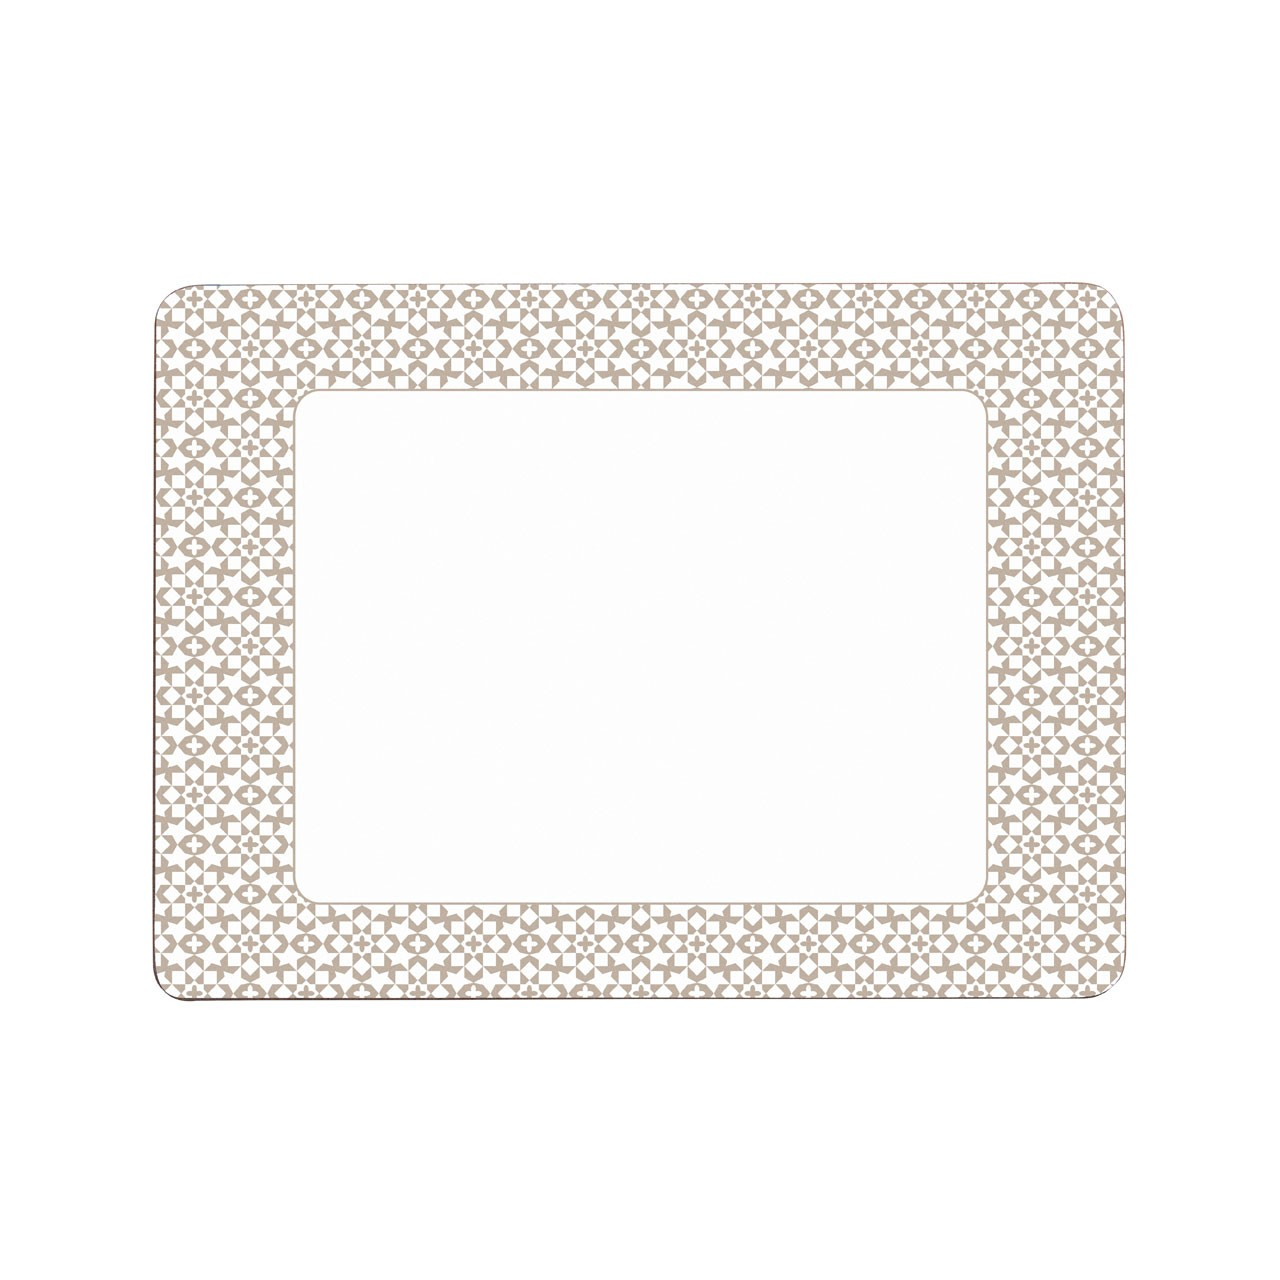 Casablanca Placemats, Set of 4, Natural